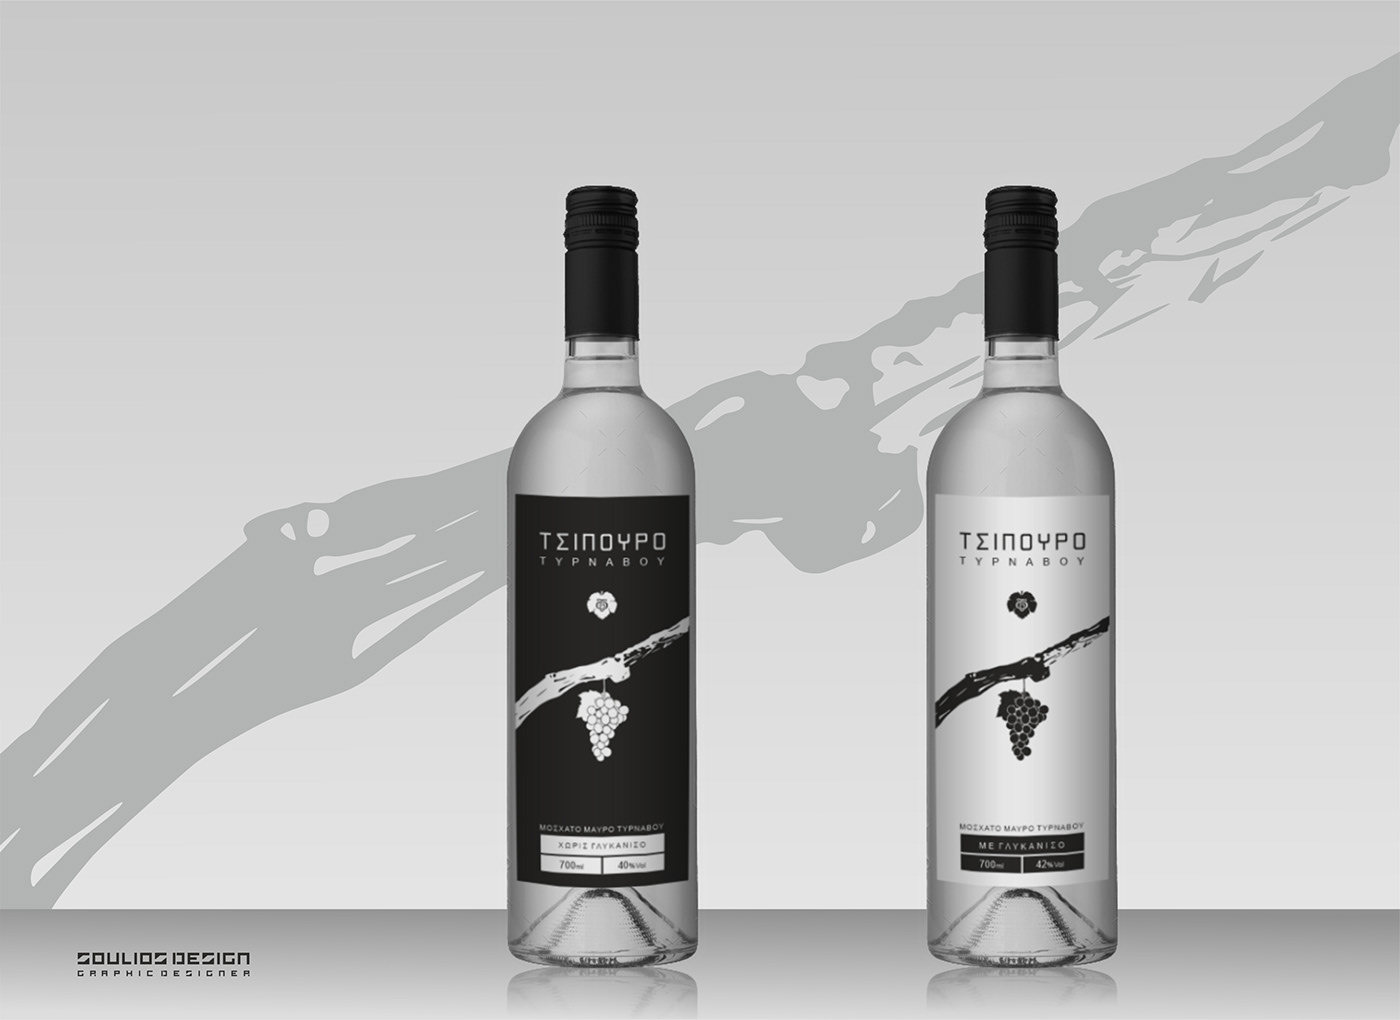 graphic design  Greece Label larisa larissa package Packaging soulios design thesaly tyrnavos